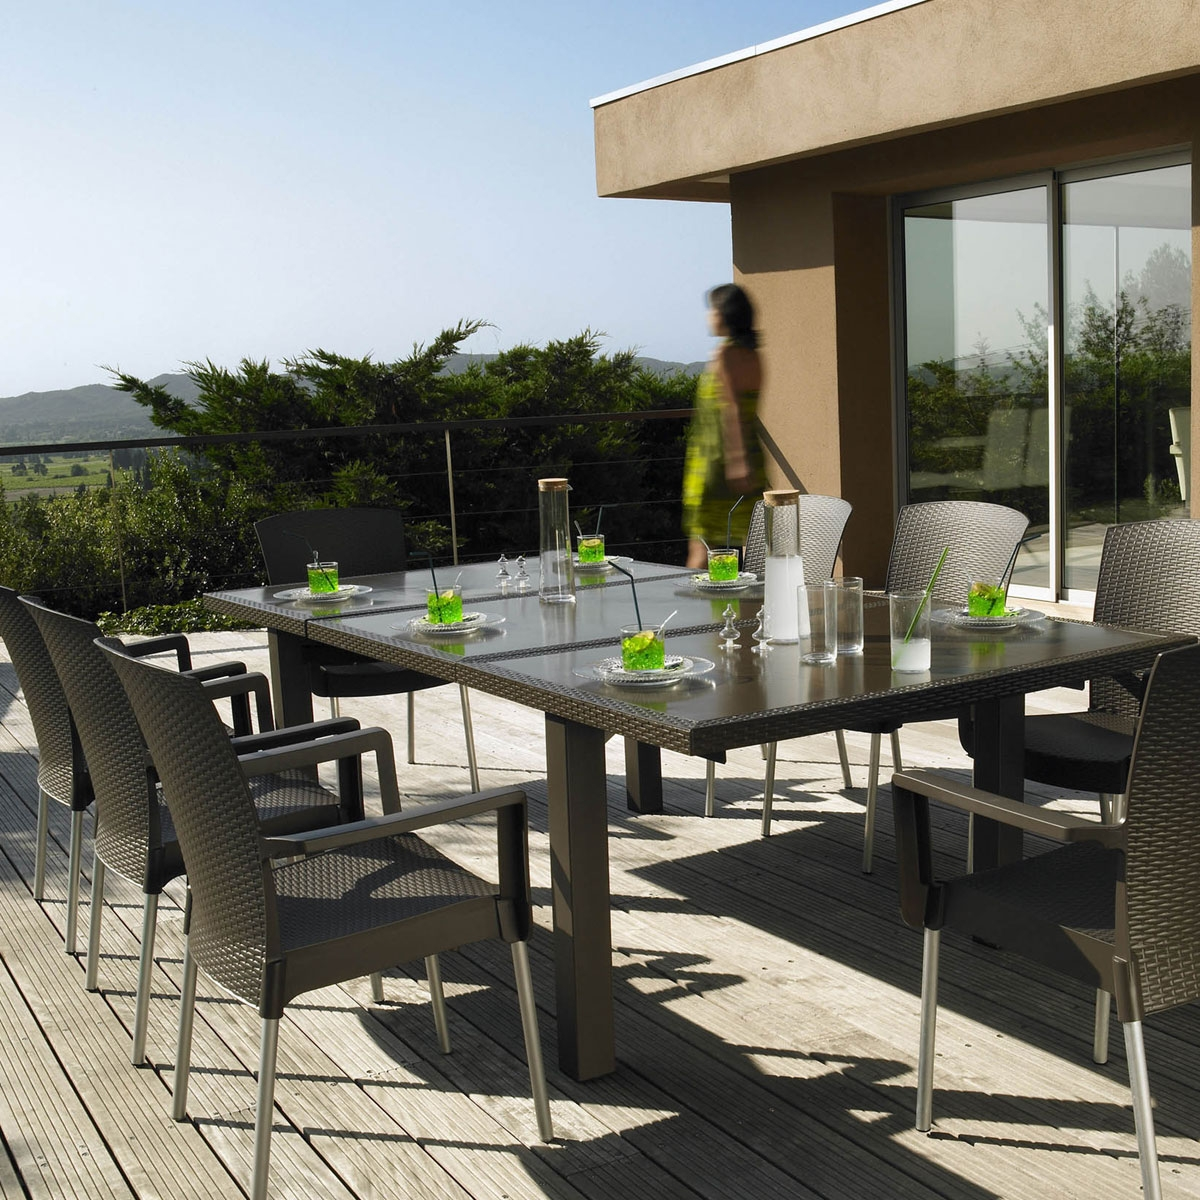 Salon de jardin grofillex zendart design - Table jardin grofilex besancon ...